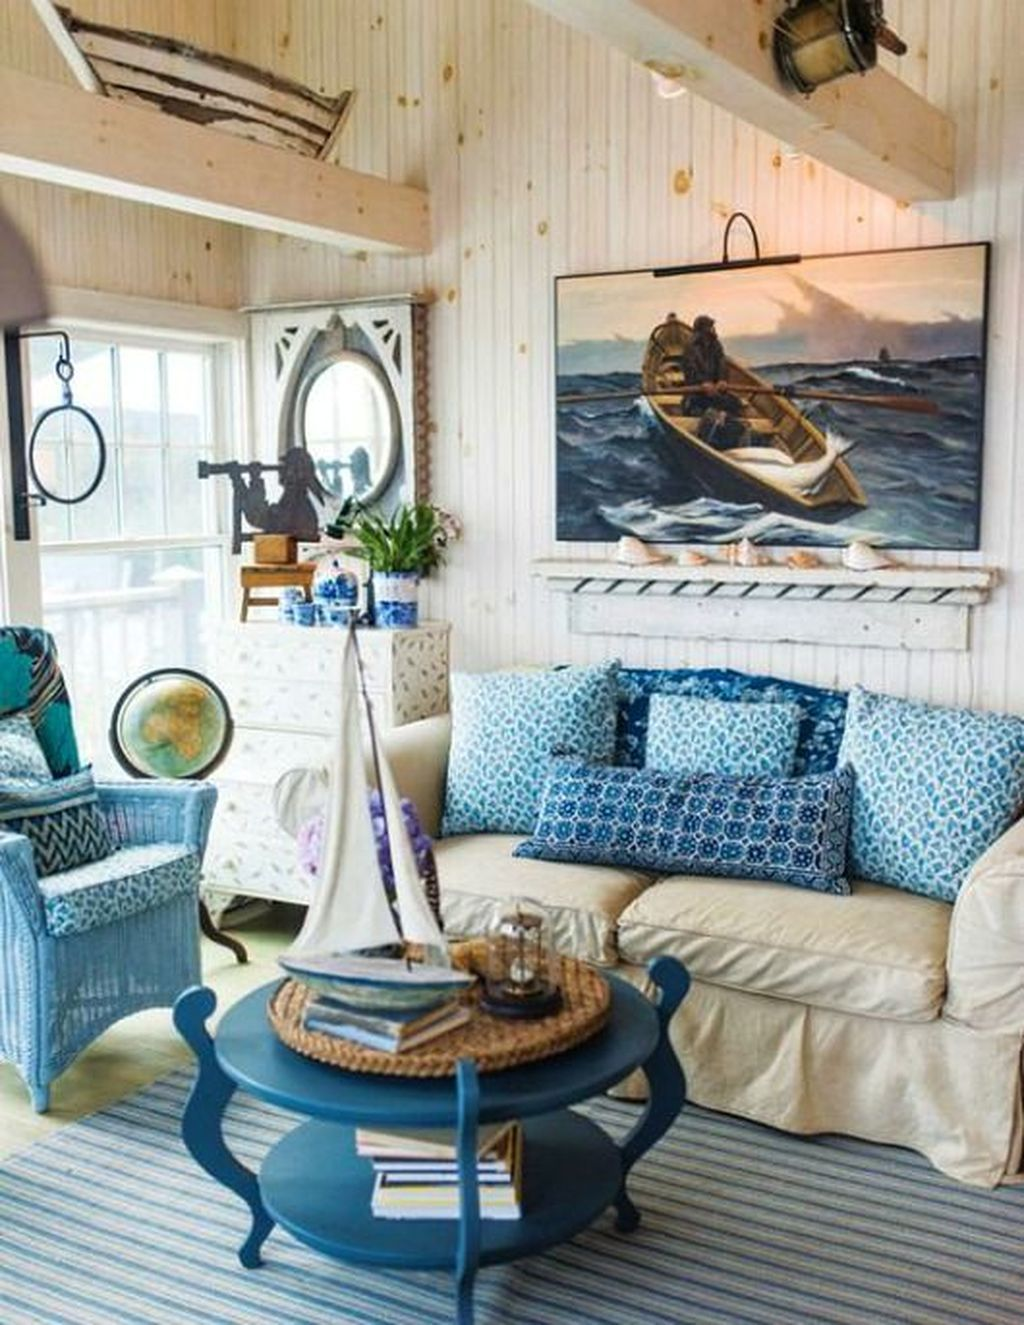 35 Delightful Coastal Themes Ideas For Living Room To Have In 2020 Cottage Style Living Room Seaside Cottage Interior Coastal Cottage Living Room